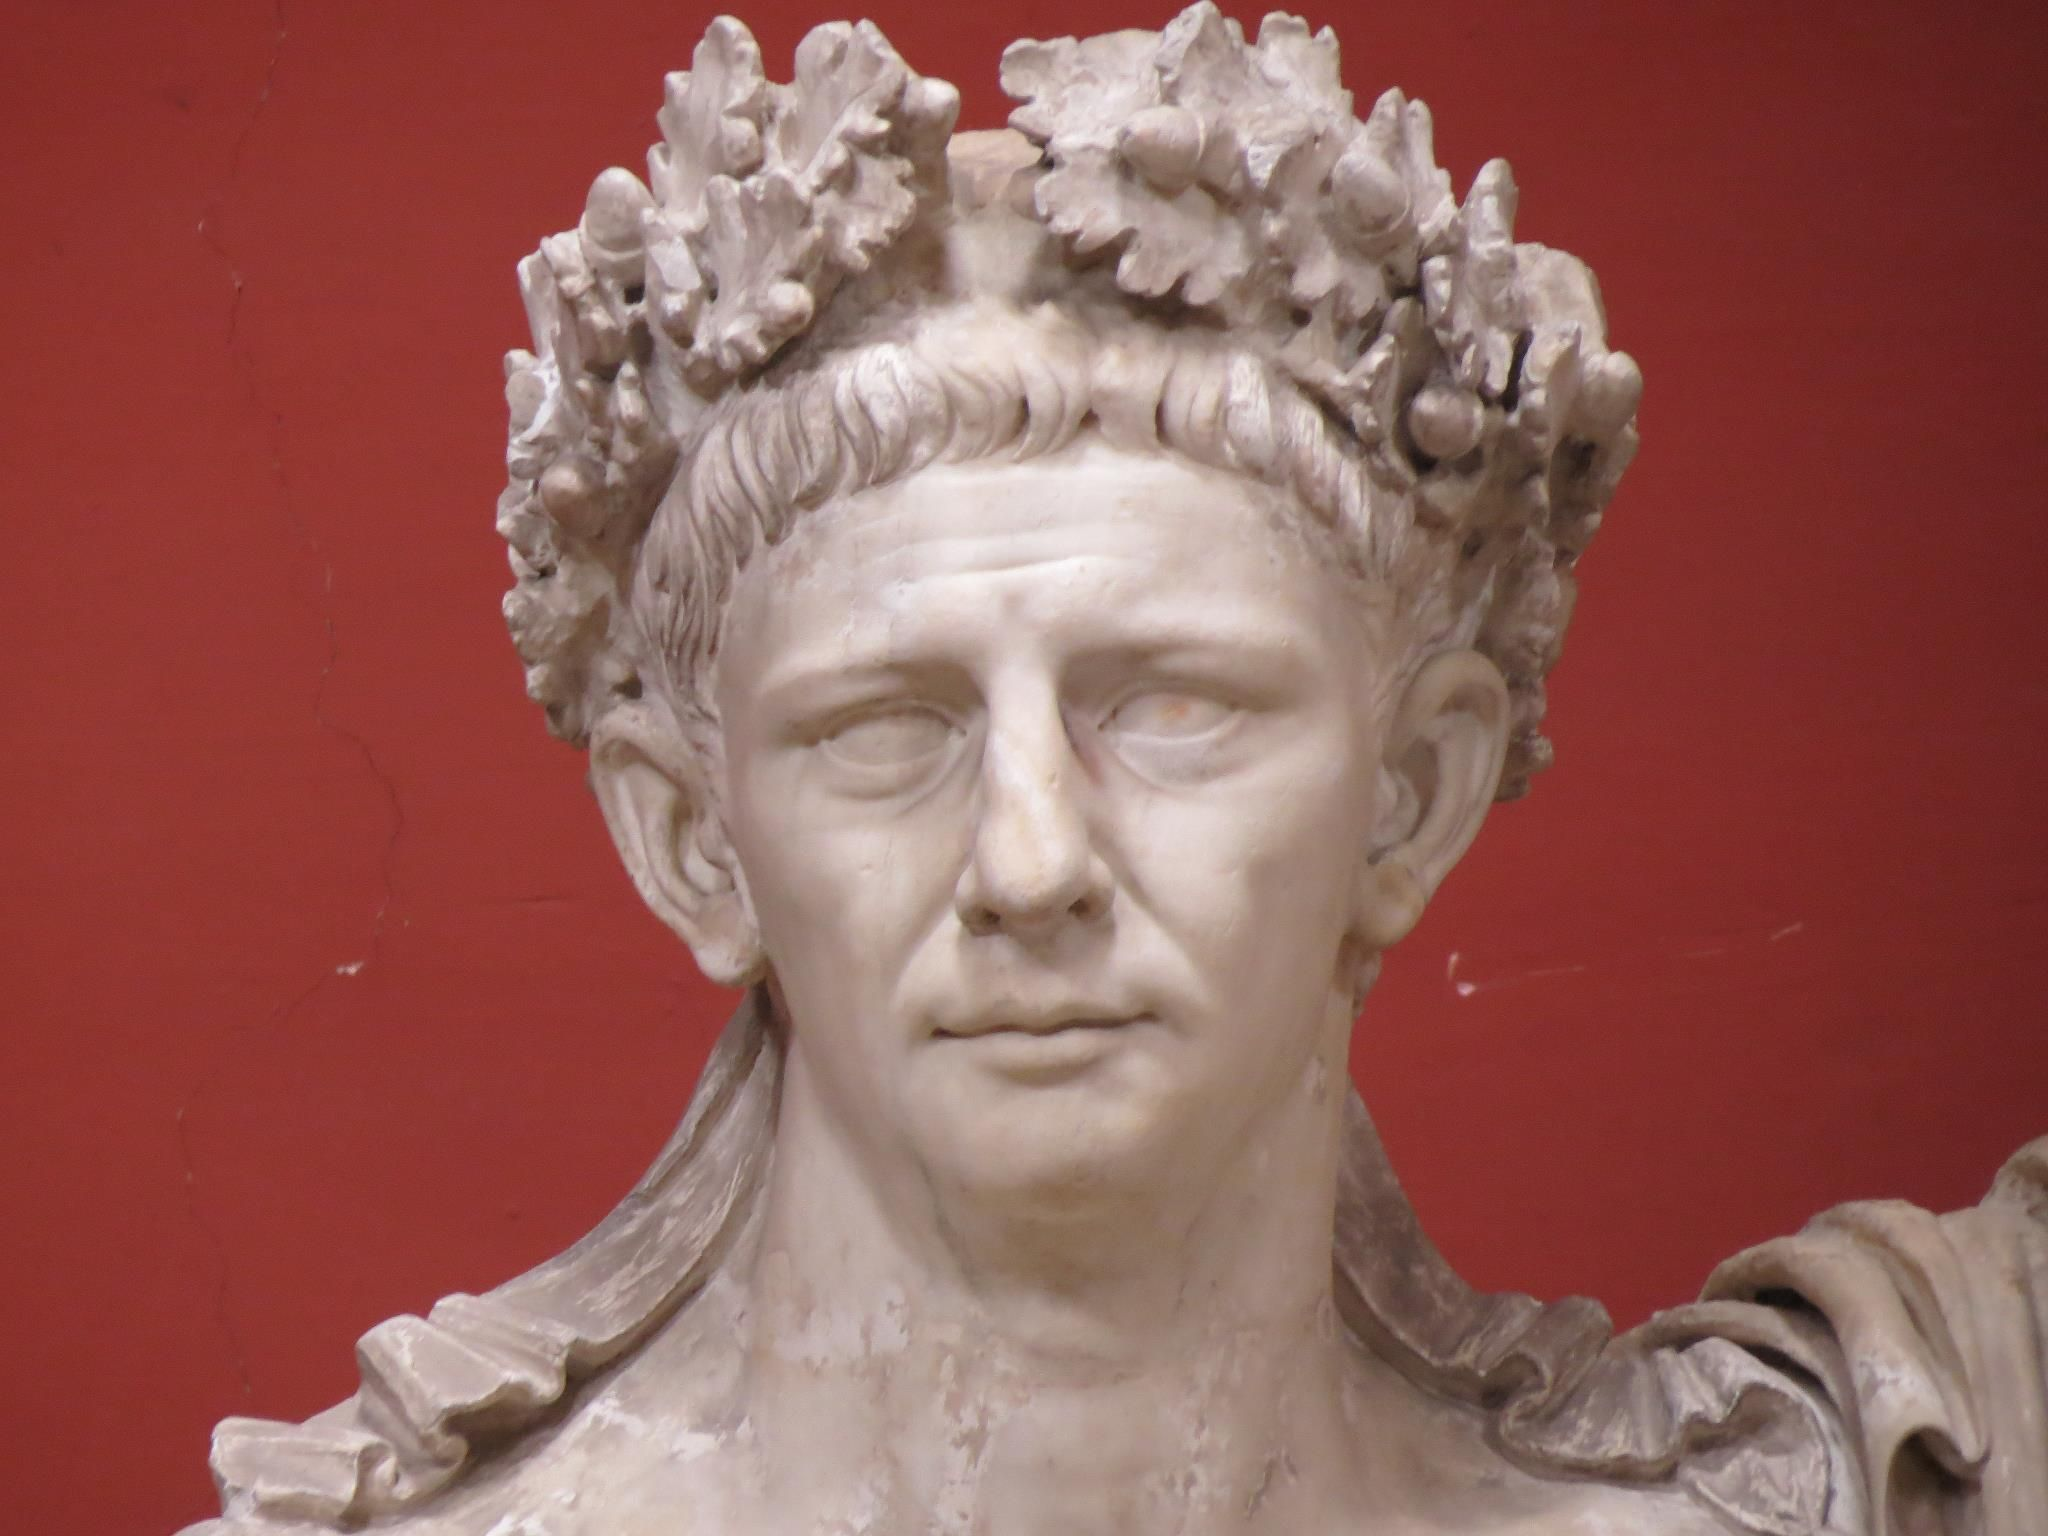 Marble bust of the Emperor Claudius, the roman emperor who successfully invaded Britain